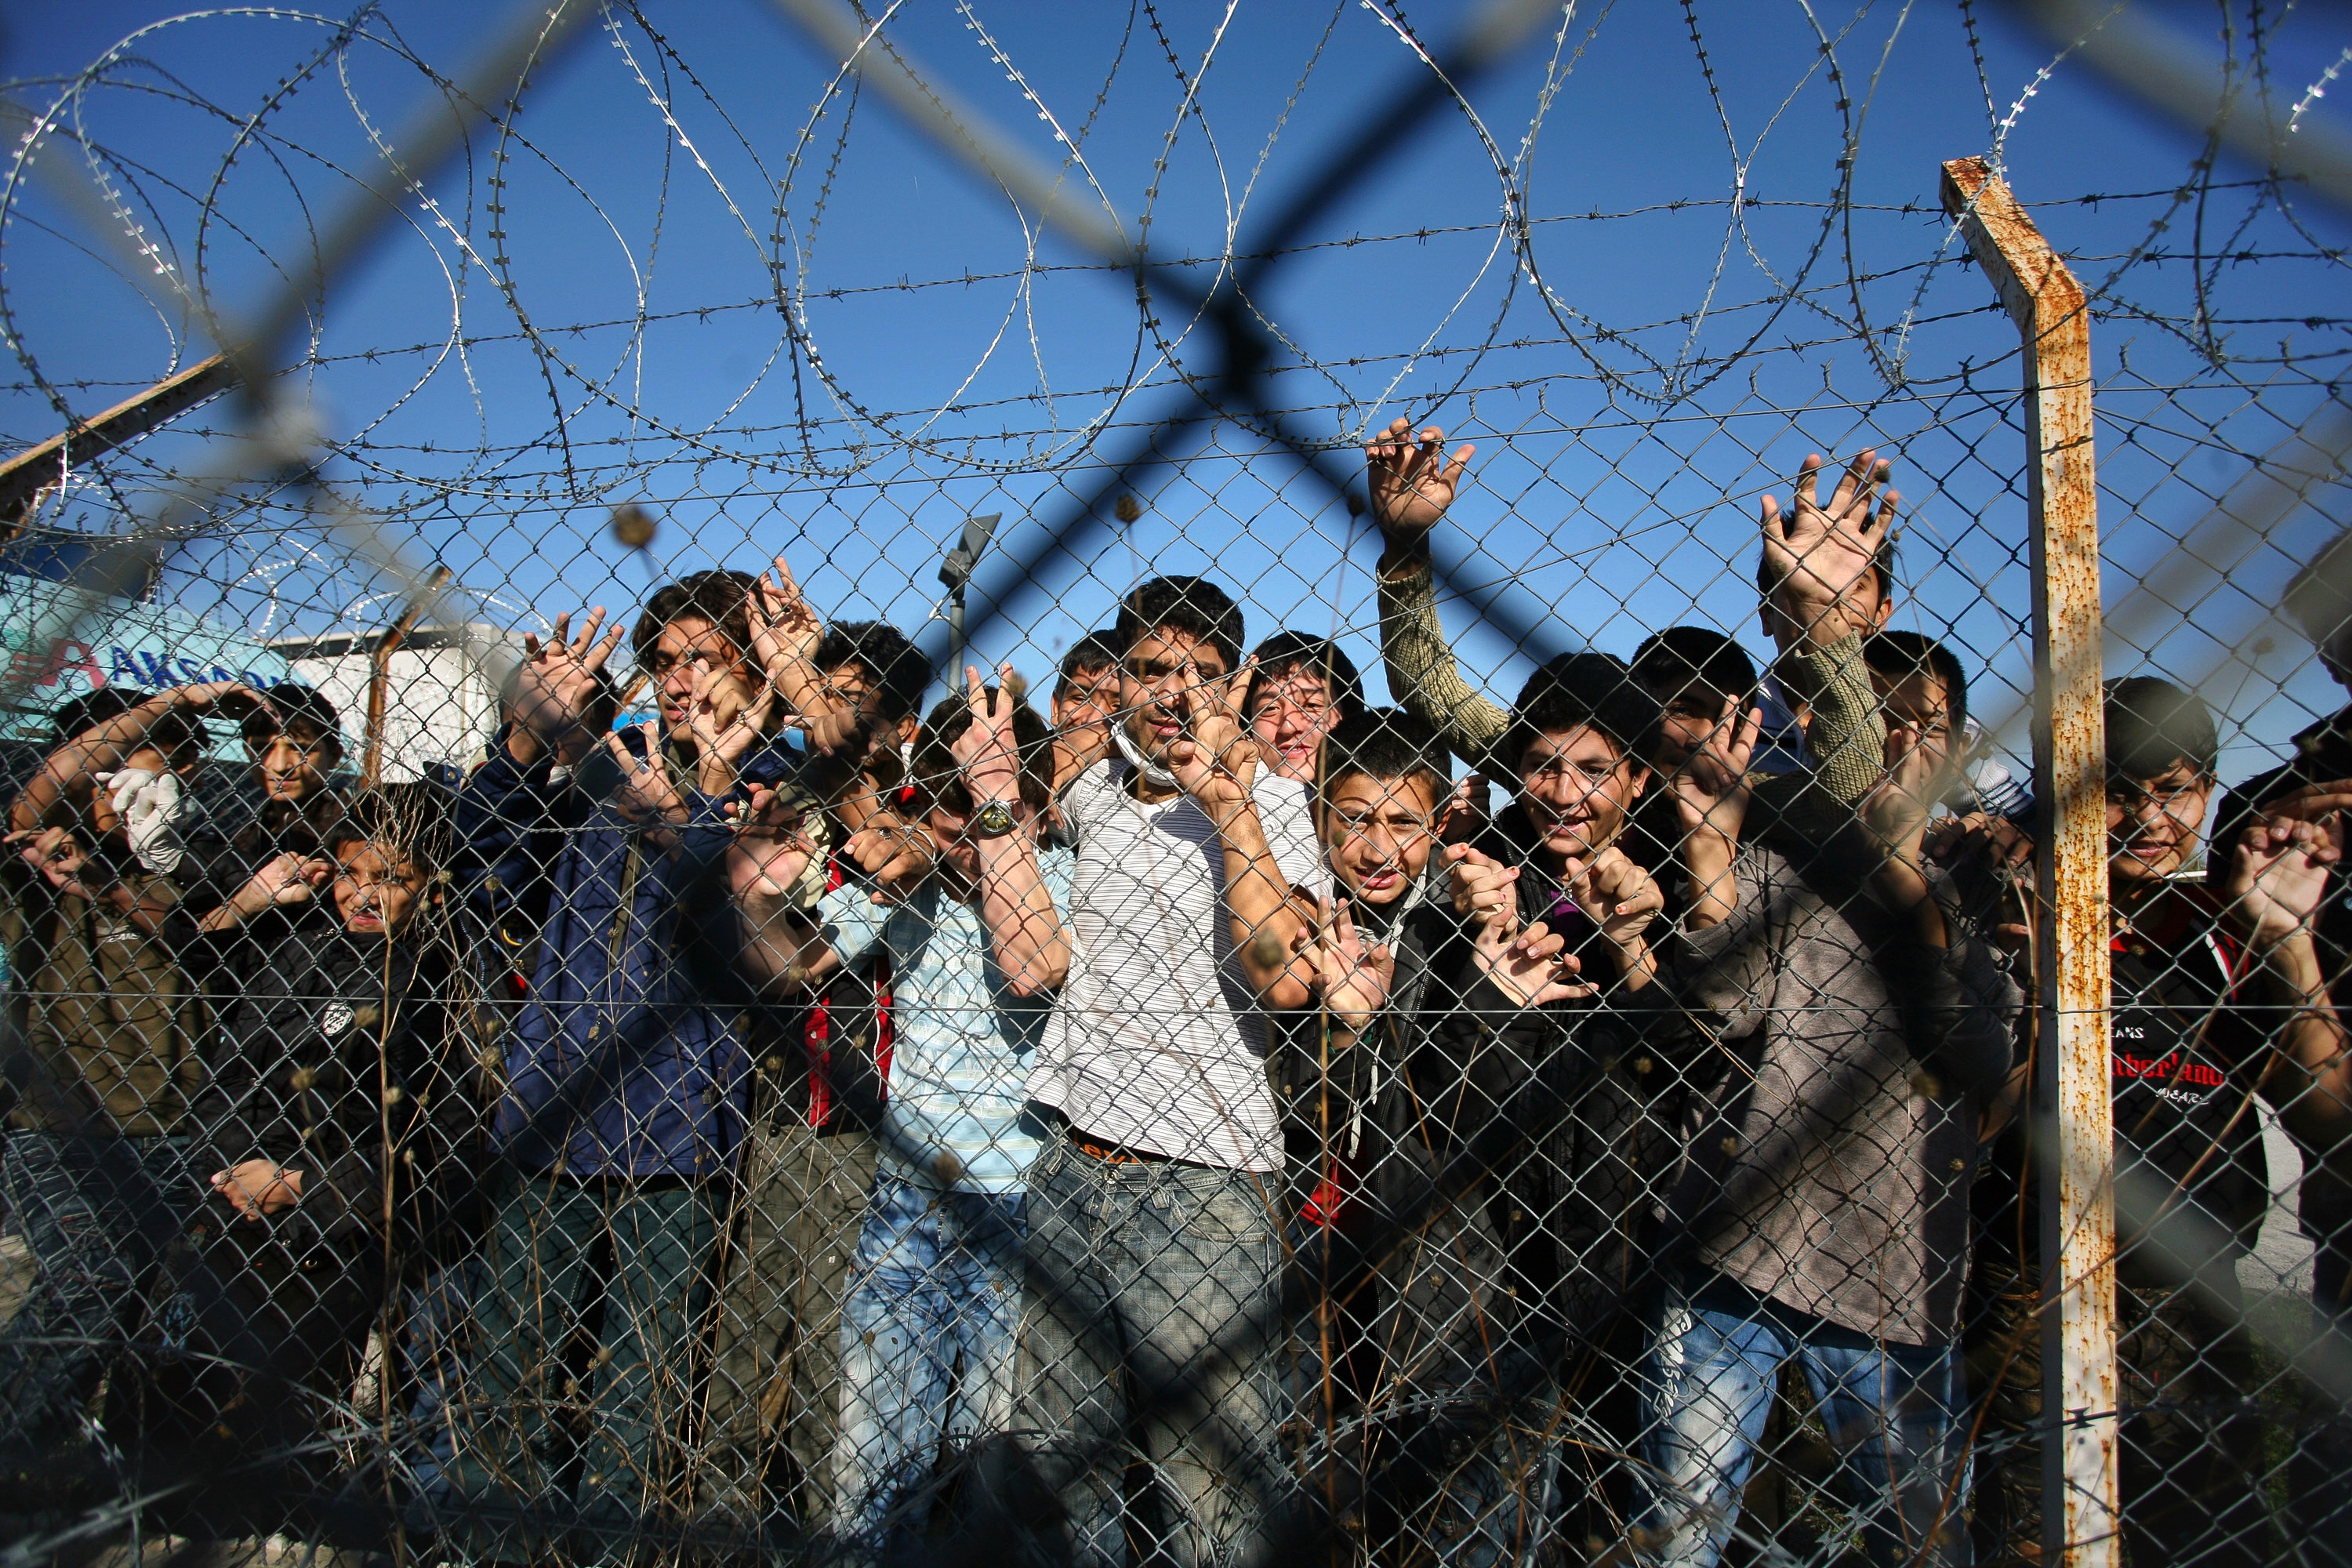 Immigrant minors peer out through the fence of an immigrant detention center in the village of Filakio, on the Greek-Turkish border, upon the arrival there of the Frontex Rapid Border Intervention Teams (RABITs) and EU officials on November 5, 2010. Border guards from 26 nations began arriving on November 2 in northeastern Greece to help curb a wave of illegal immigrants crossing over from Turkey, European border agency Frontex said. Coordinated by Greek police, some 170 guards will be on hand and until the end of December to monitor borders and scout for illegal immigrants, Frontex spokesman Michal Parzyszek said. AFP PHOTO /Sakis Mitrolidis (Photo credit should read SAKIS MITROLIDIS/AFP via Getty Images)